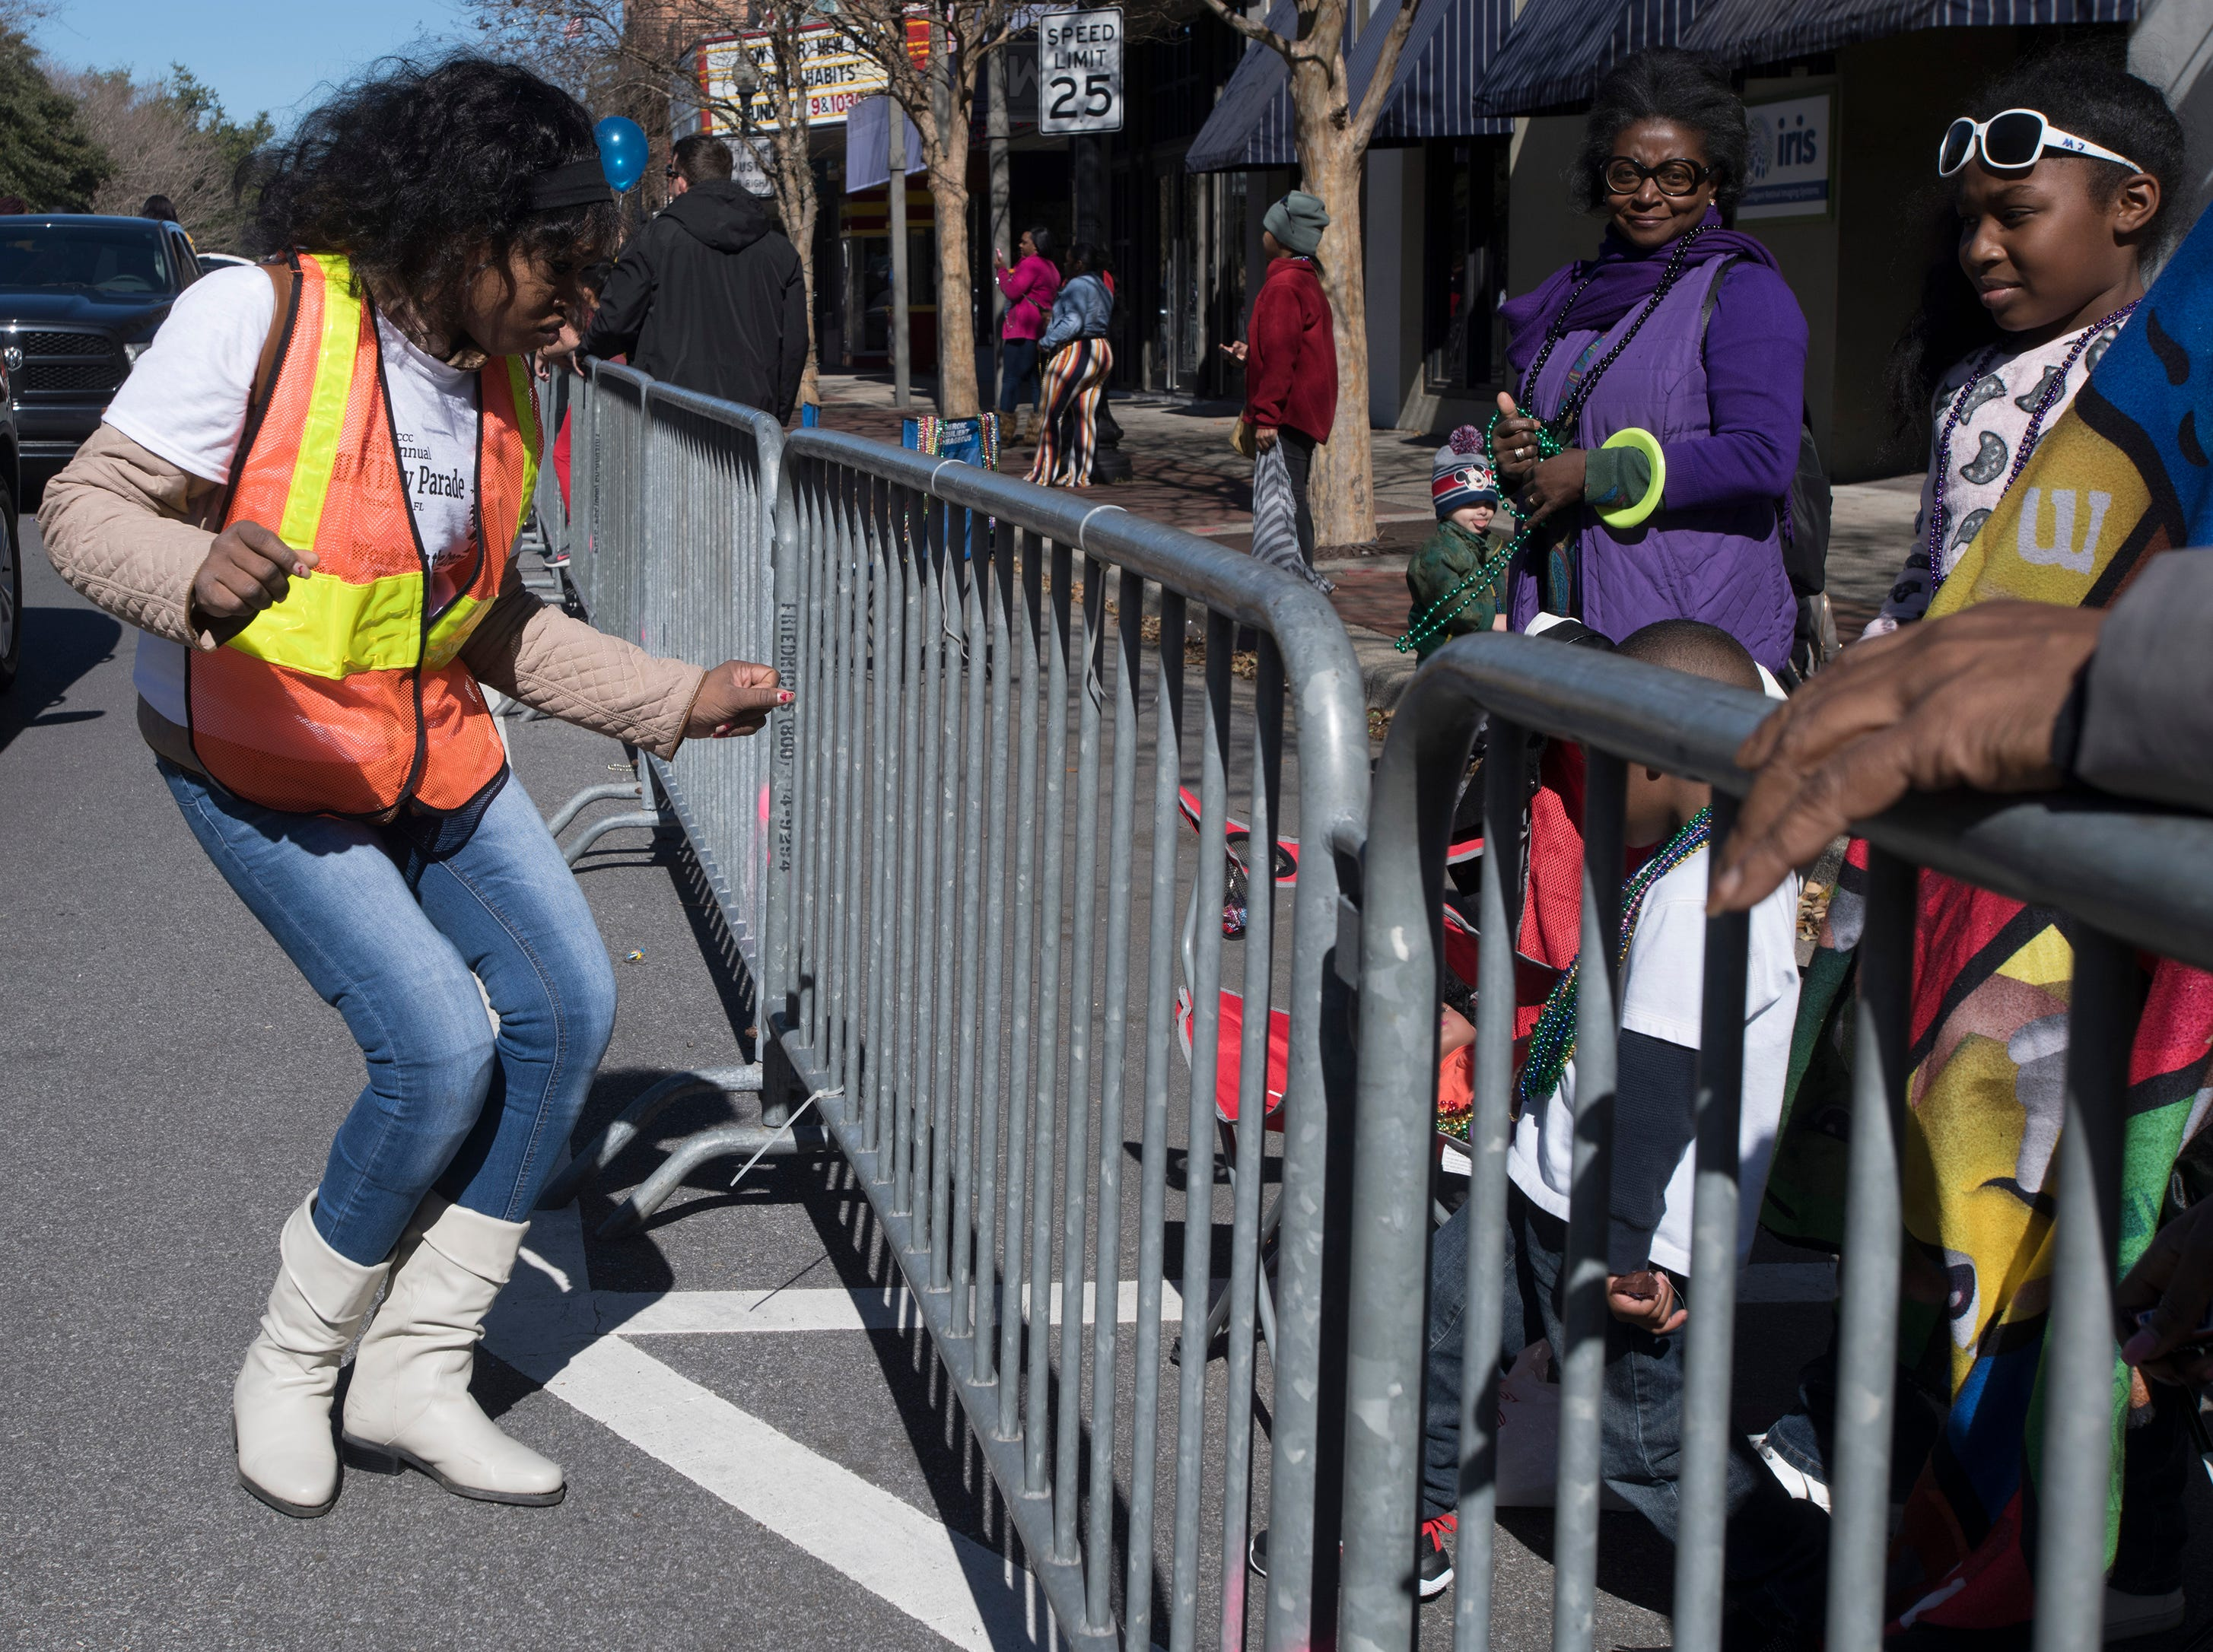 Maya Porter entertains the spectators watching with a soft shoe dance during the annual Martin Lunter King, Jr. Parade in downtown Pensacola on Monday, Jan. 21, 2019.